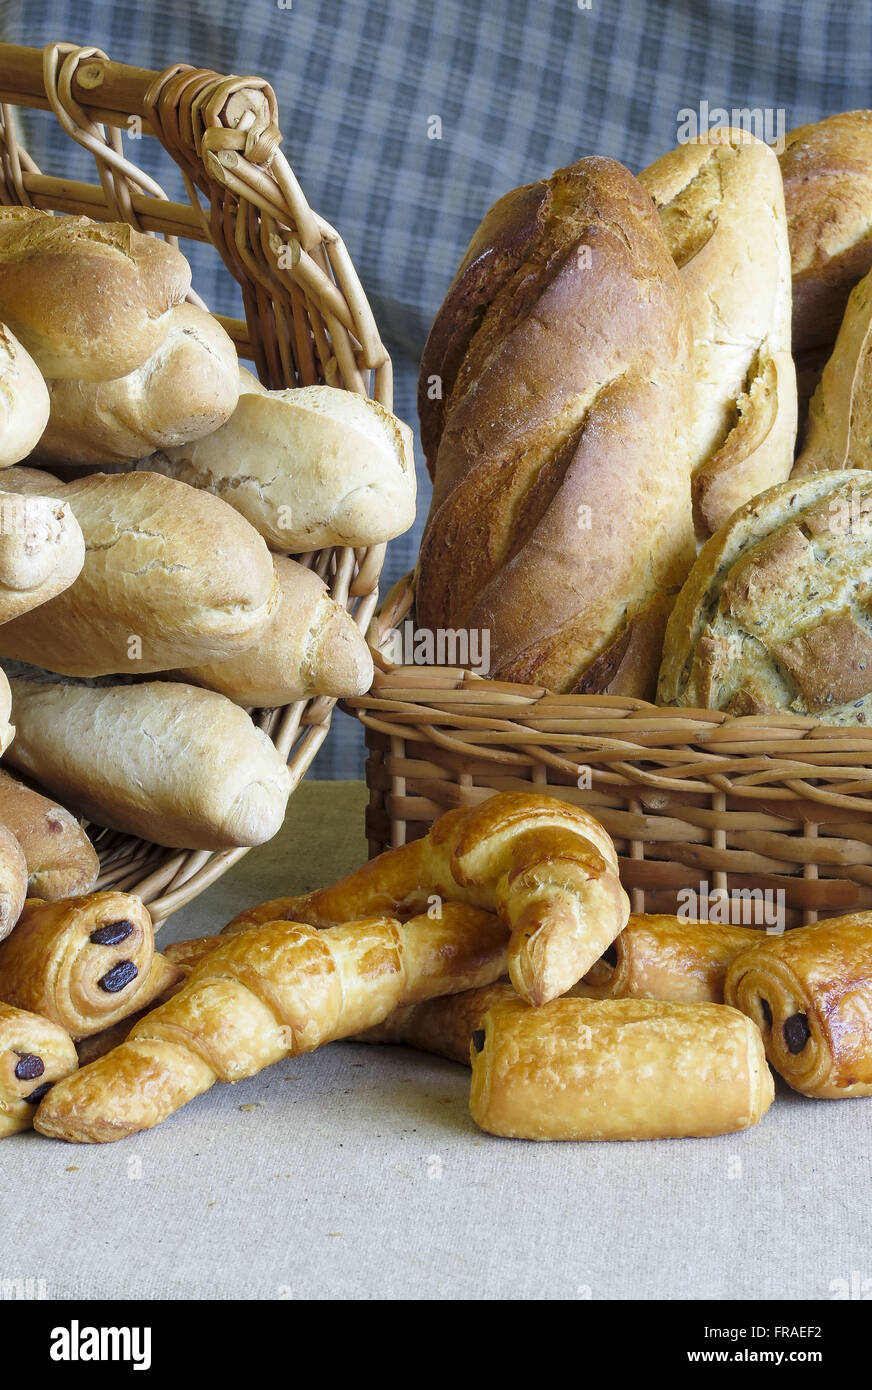 Varied kinds of breads - Stock Image